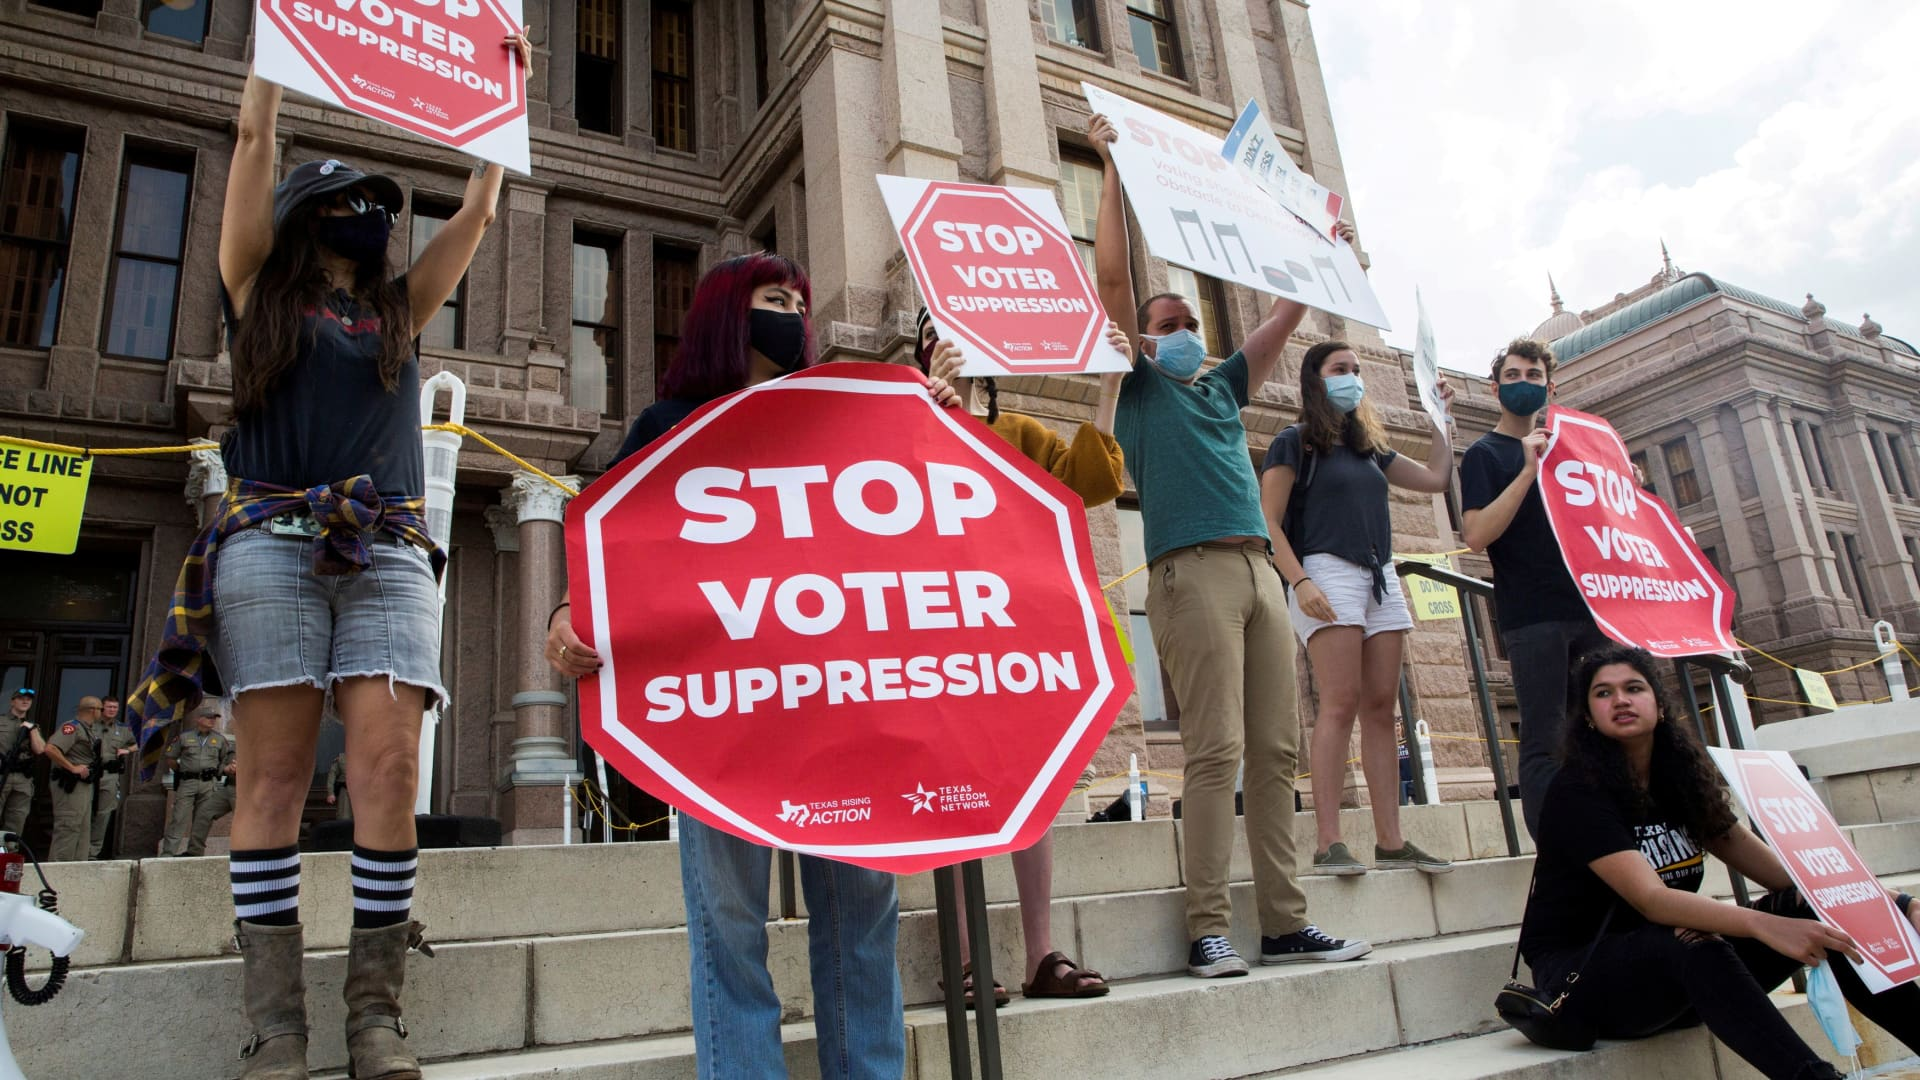 Voting rights activists gather during a protest against Texas legislators who are advancing new voting restrictions in Austin, Texas, U.S., May 8, 2021.